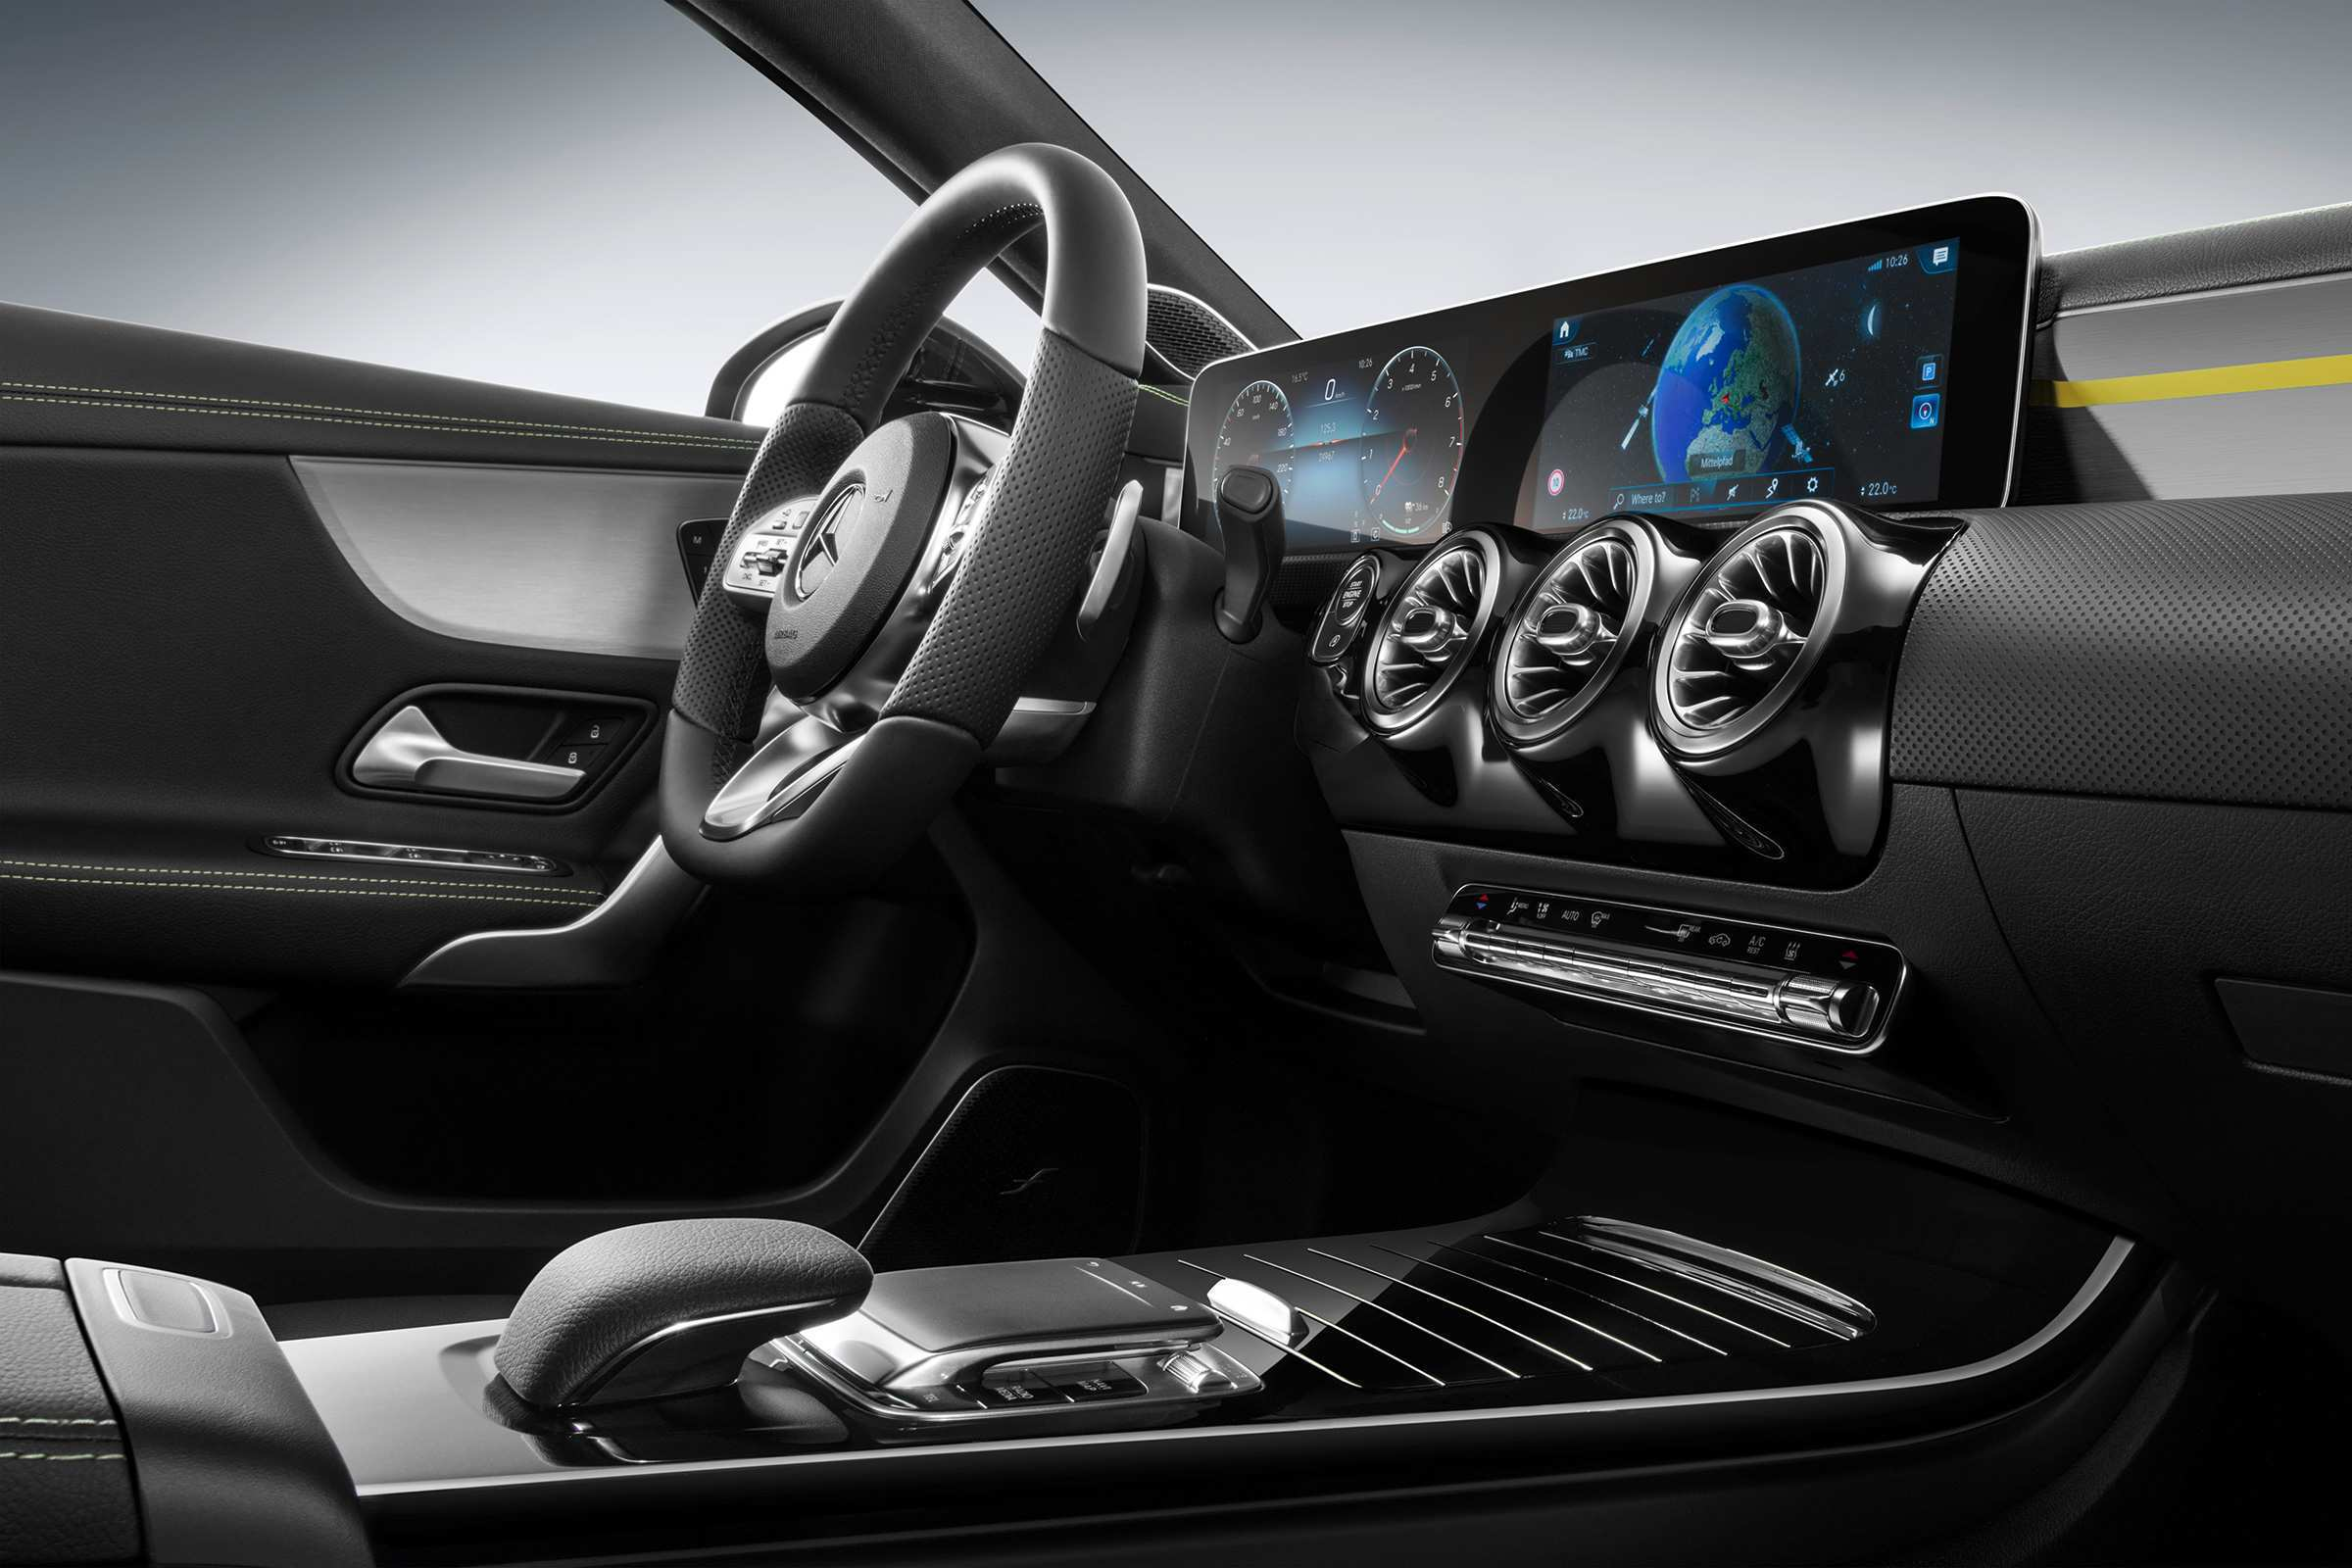 75 Gallery of Mercedes C 2019 Interior Overview for Mercedes C 2019 Interior